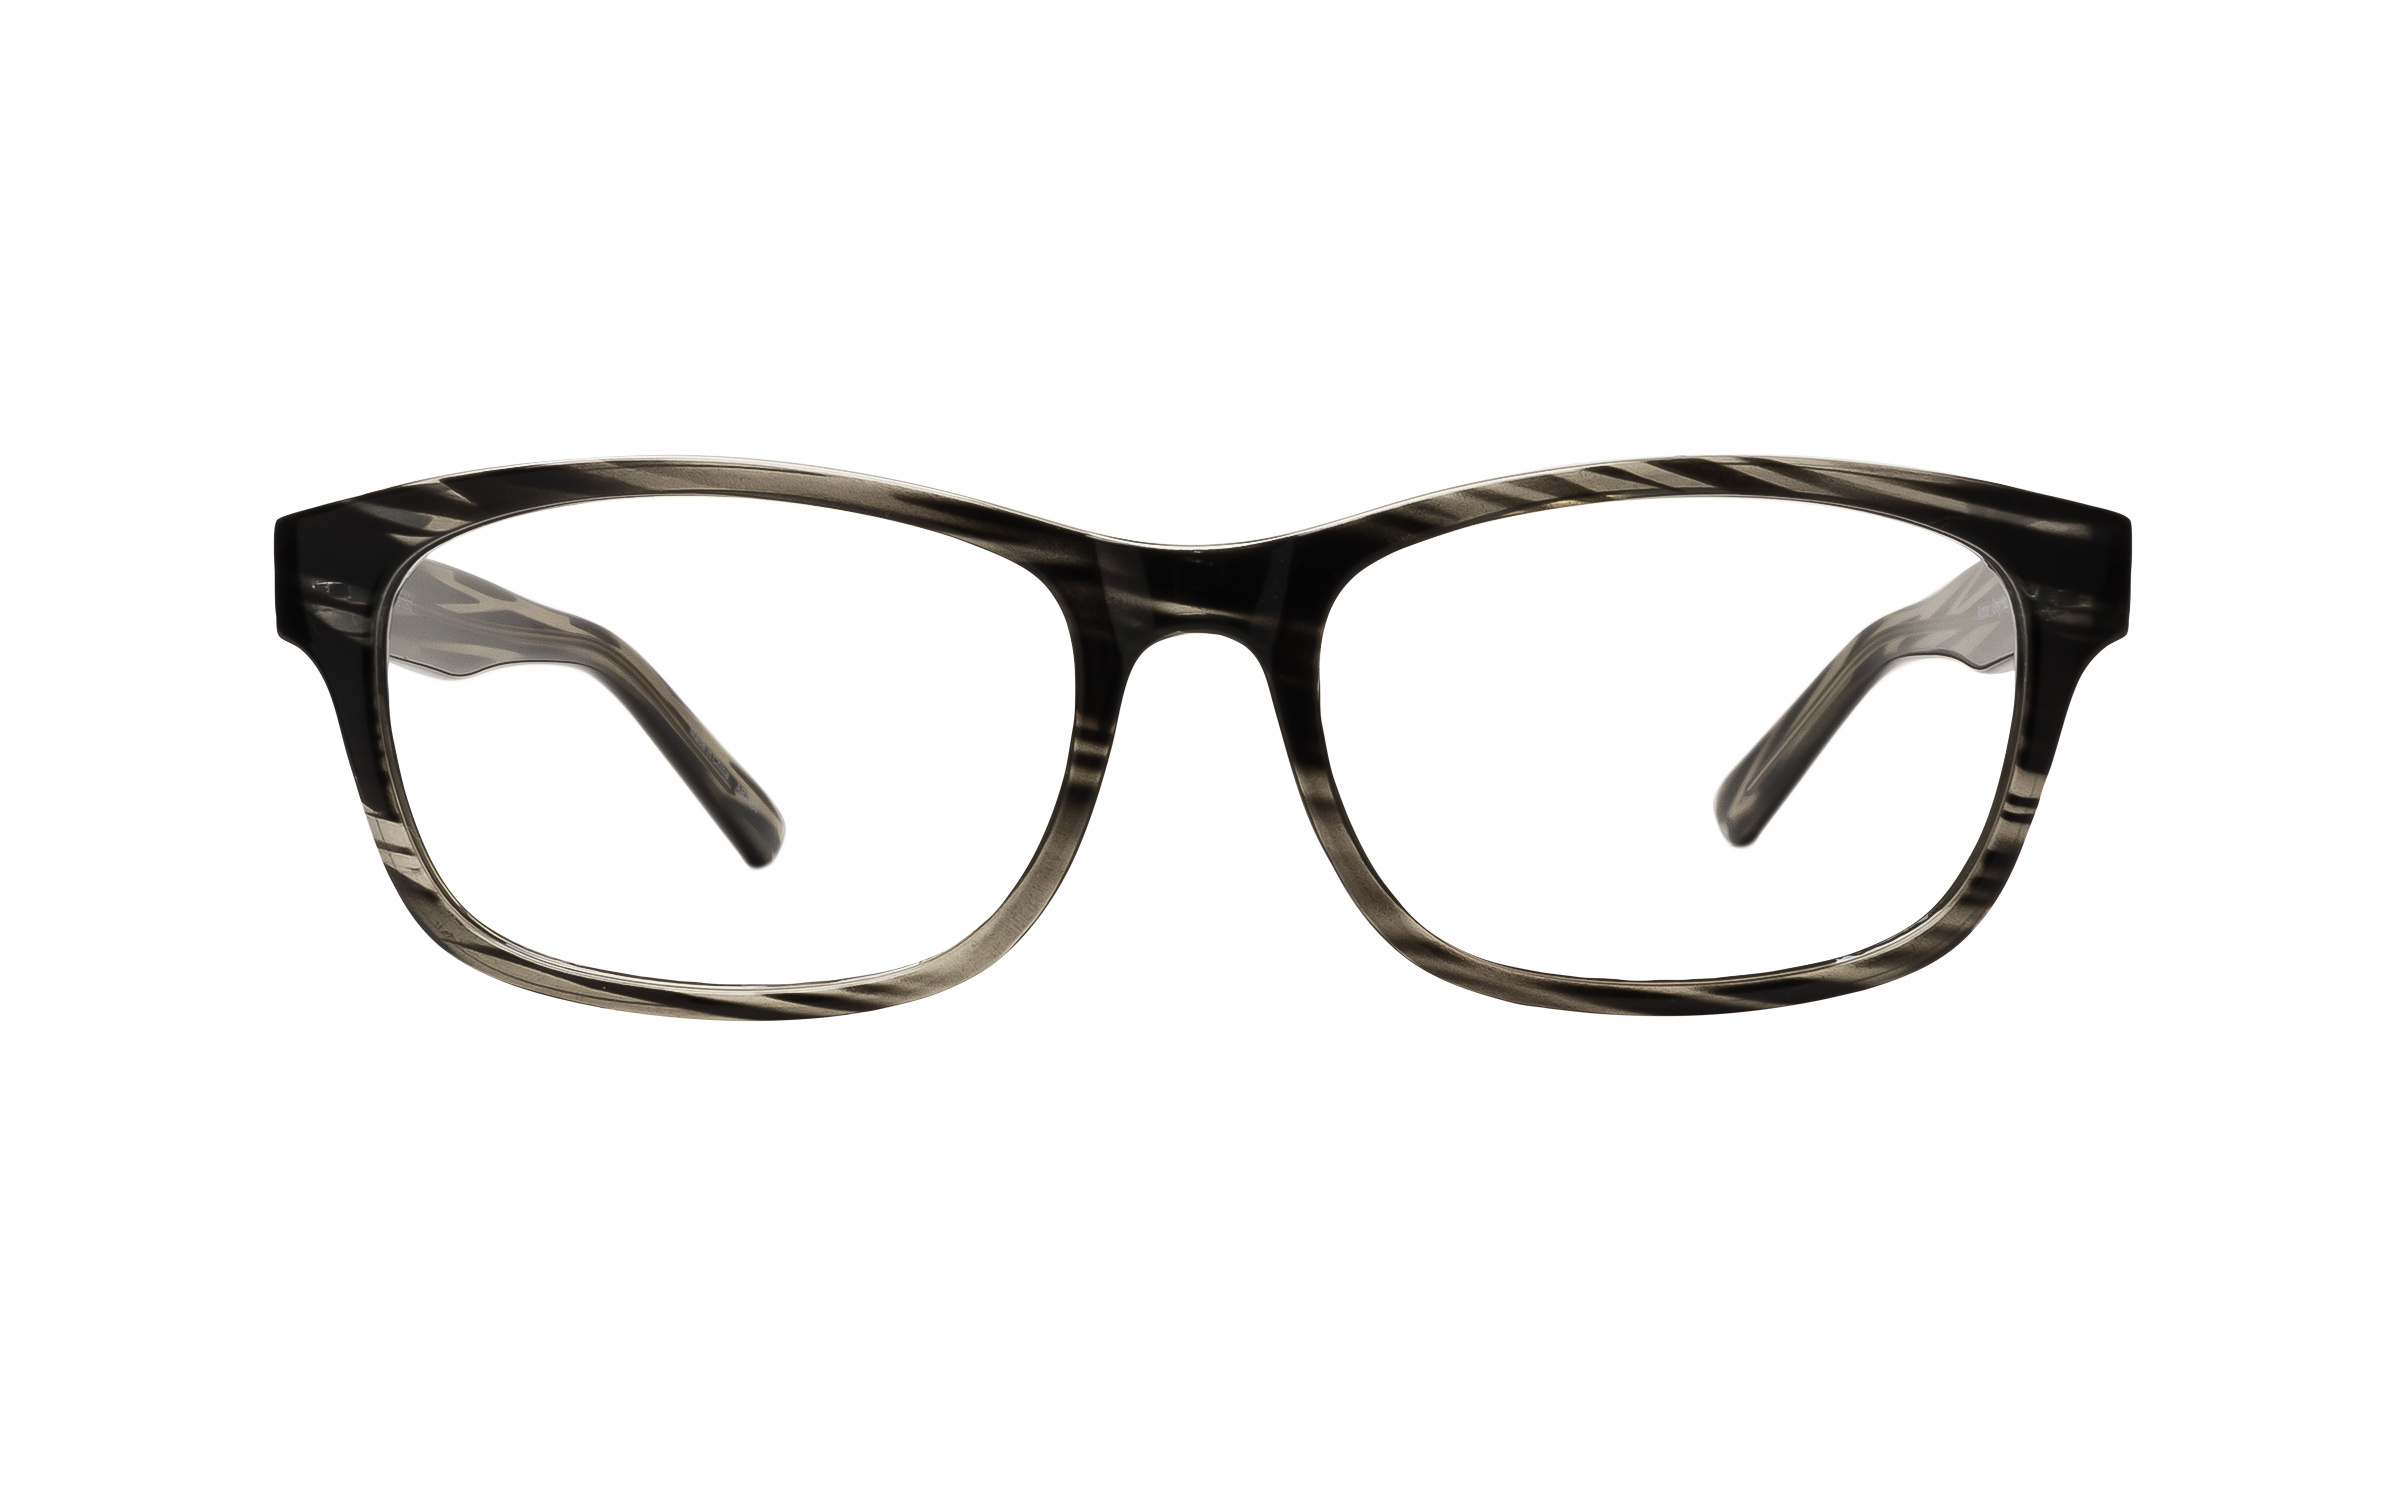 Clearly Basics Airdrie (53) Eyeglasses and Frame in Haze Grey - Online Coastal